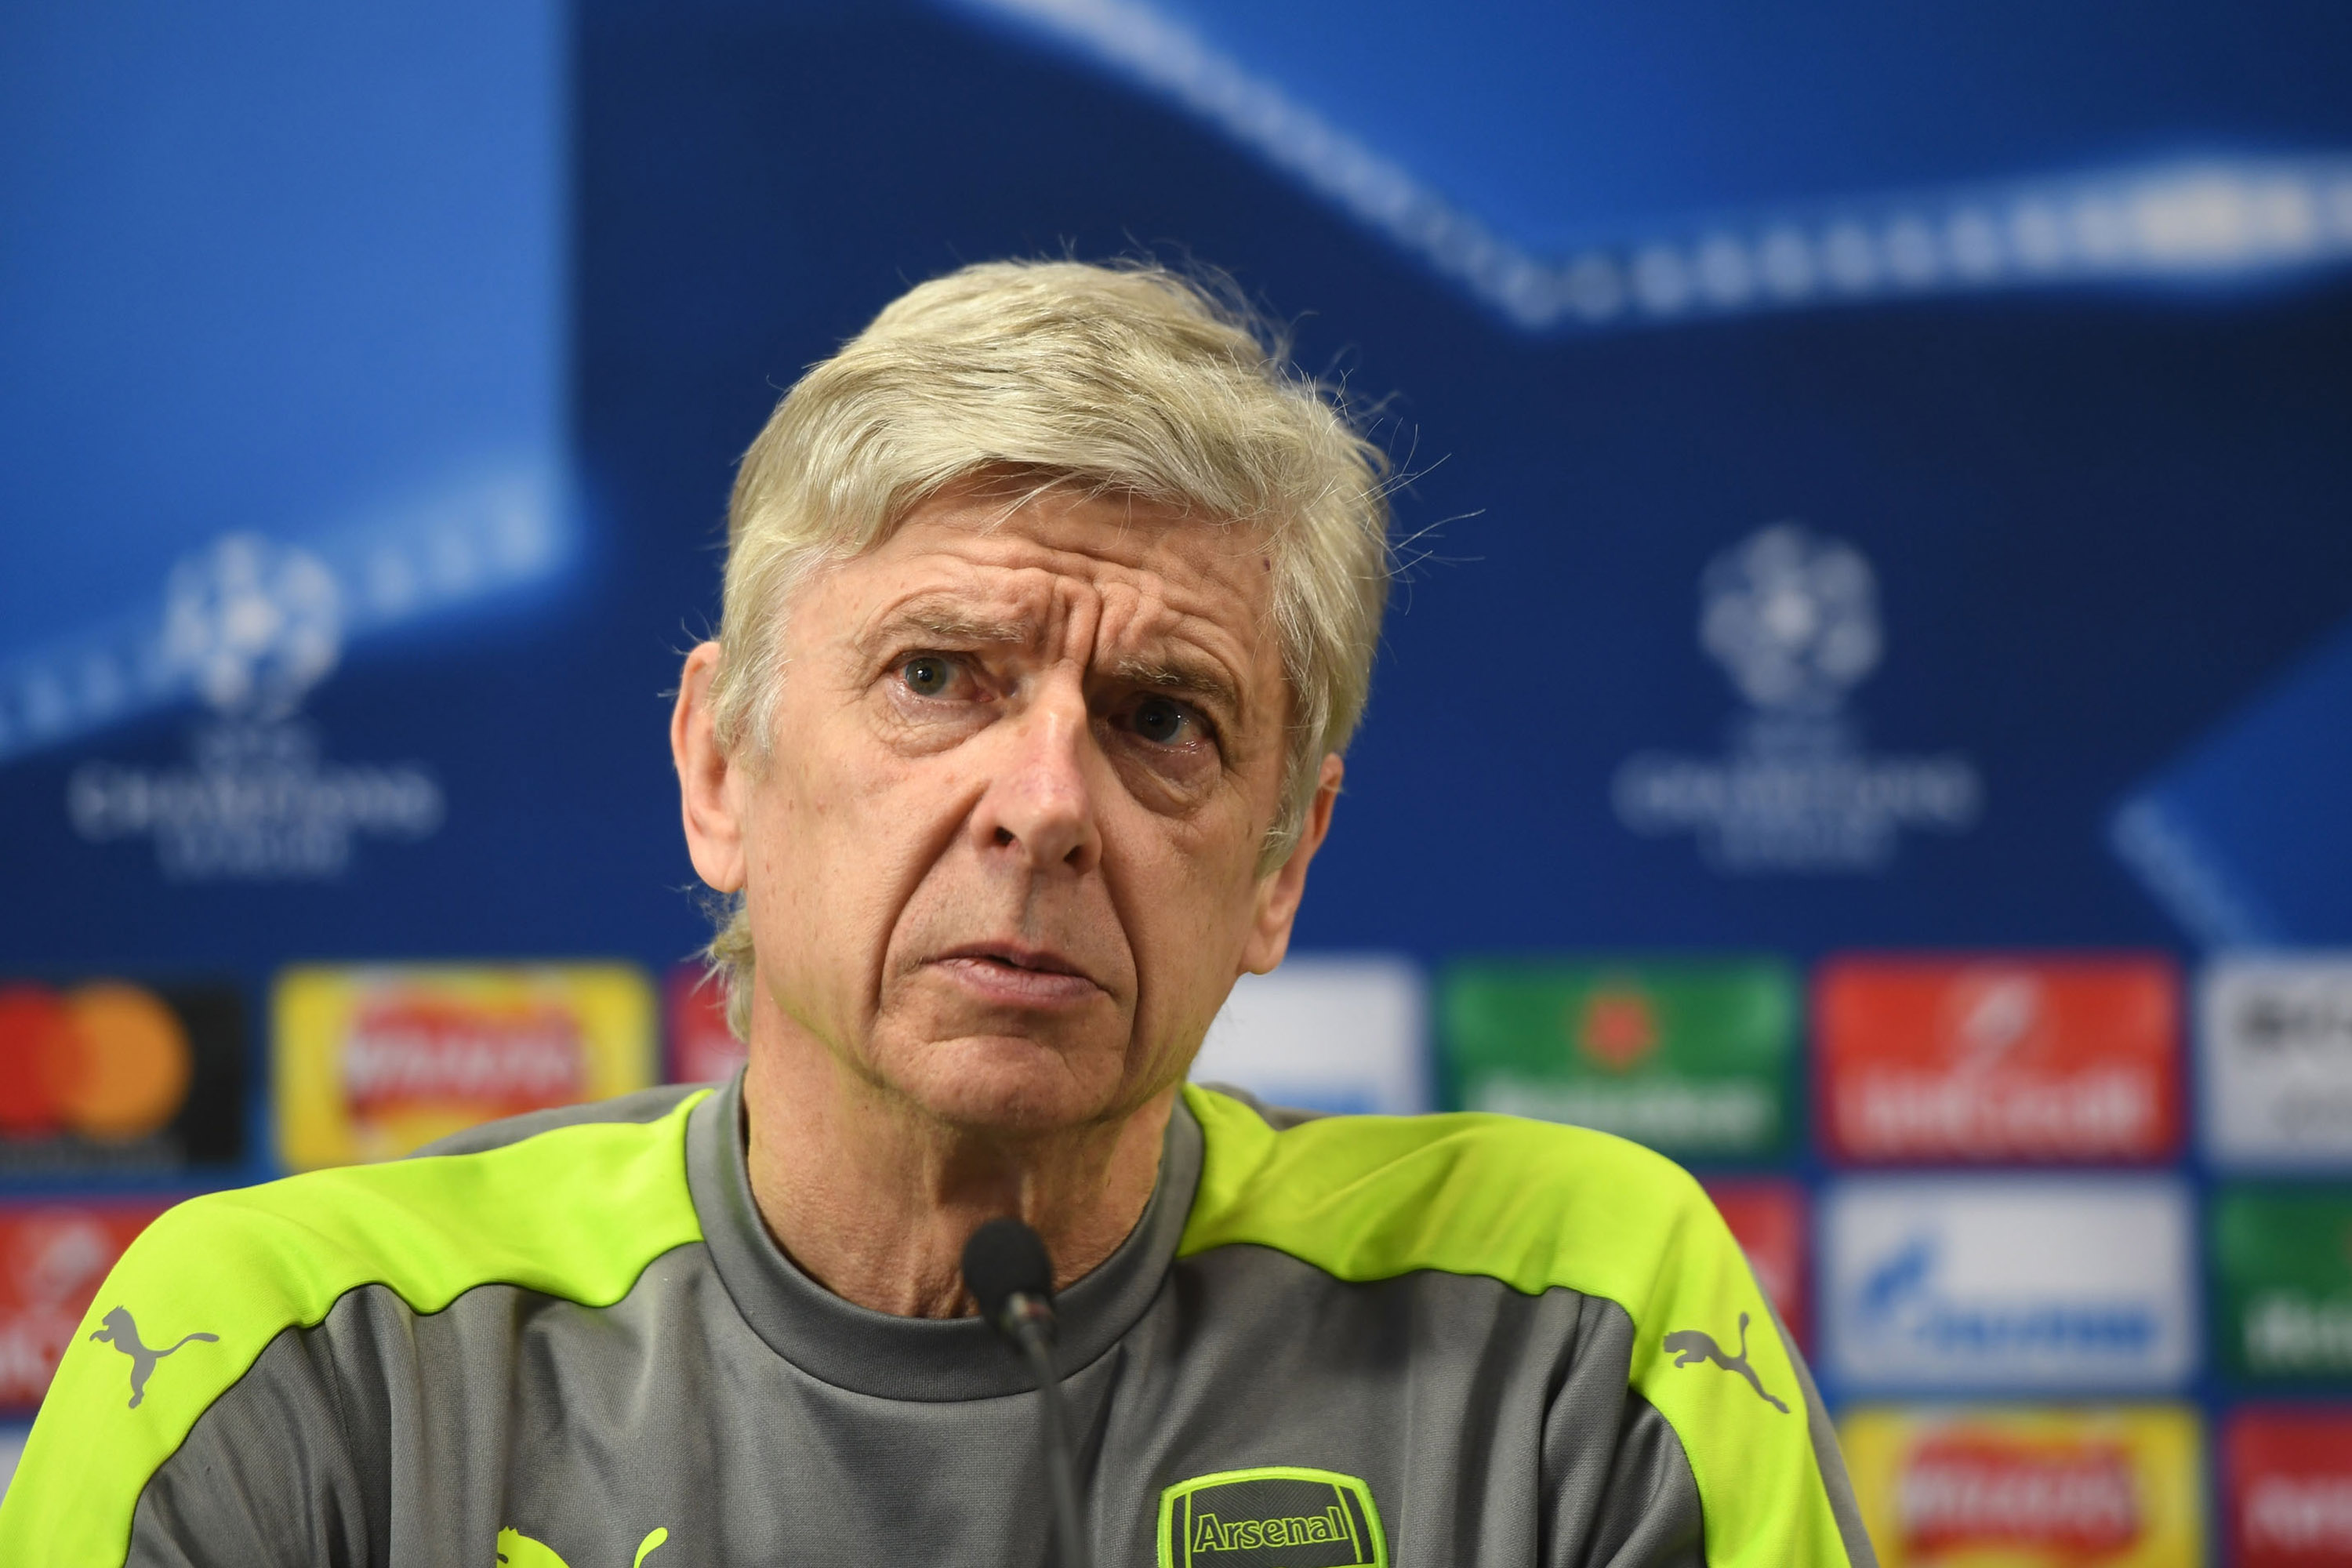 Arsenal should've sacked Arsene Wenger ten years ago, says Stan Collymore